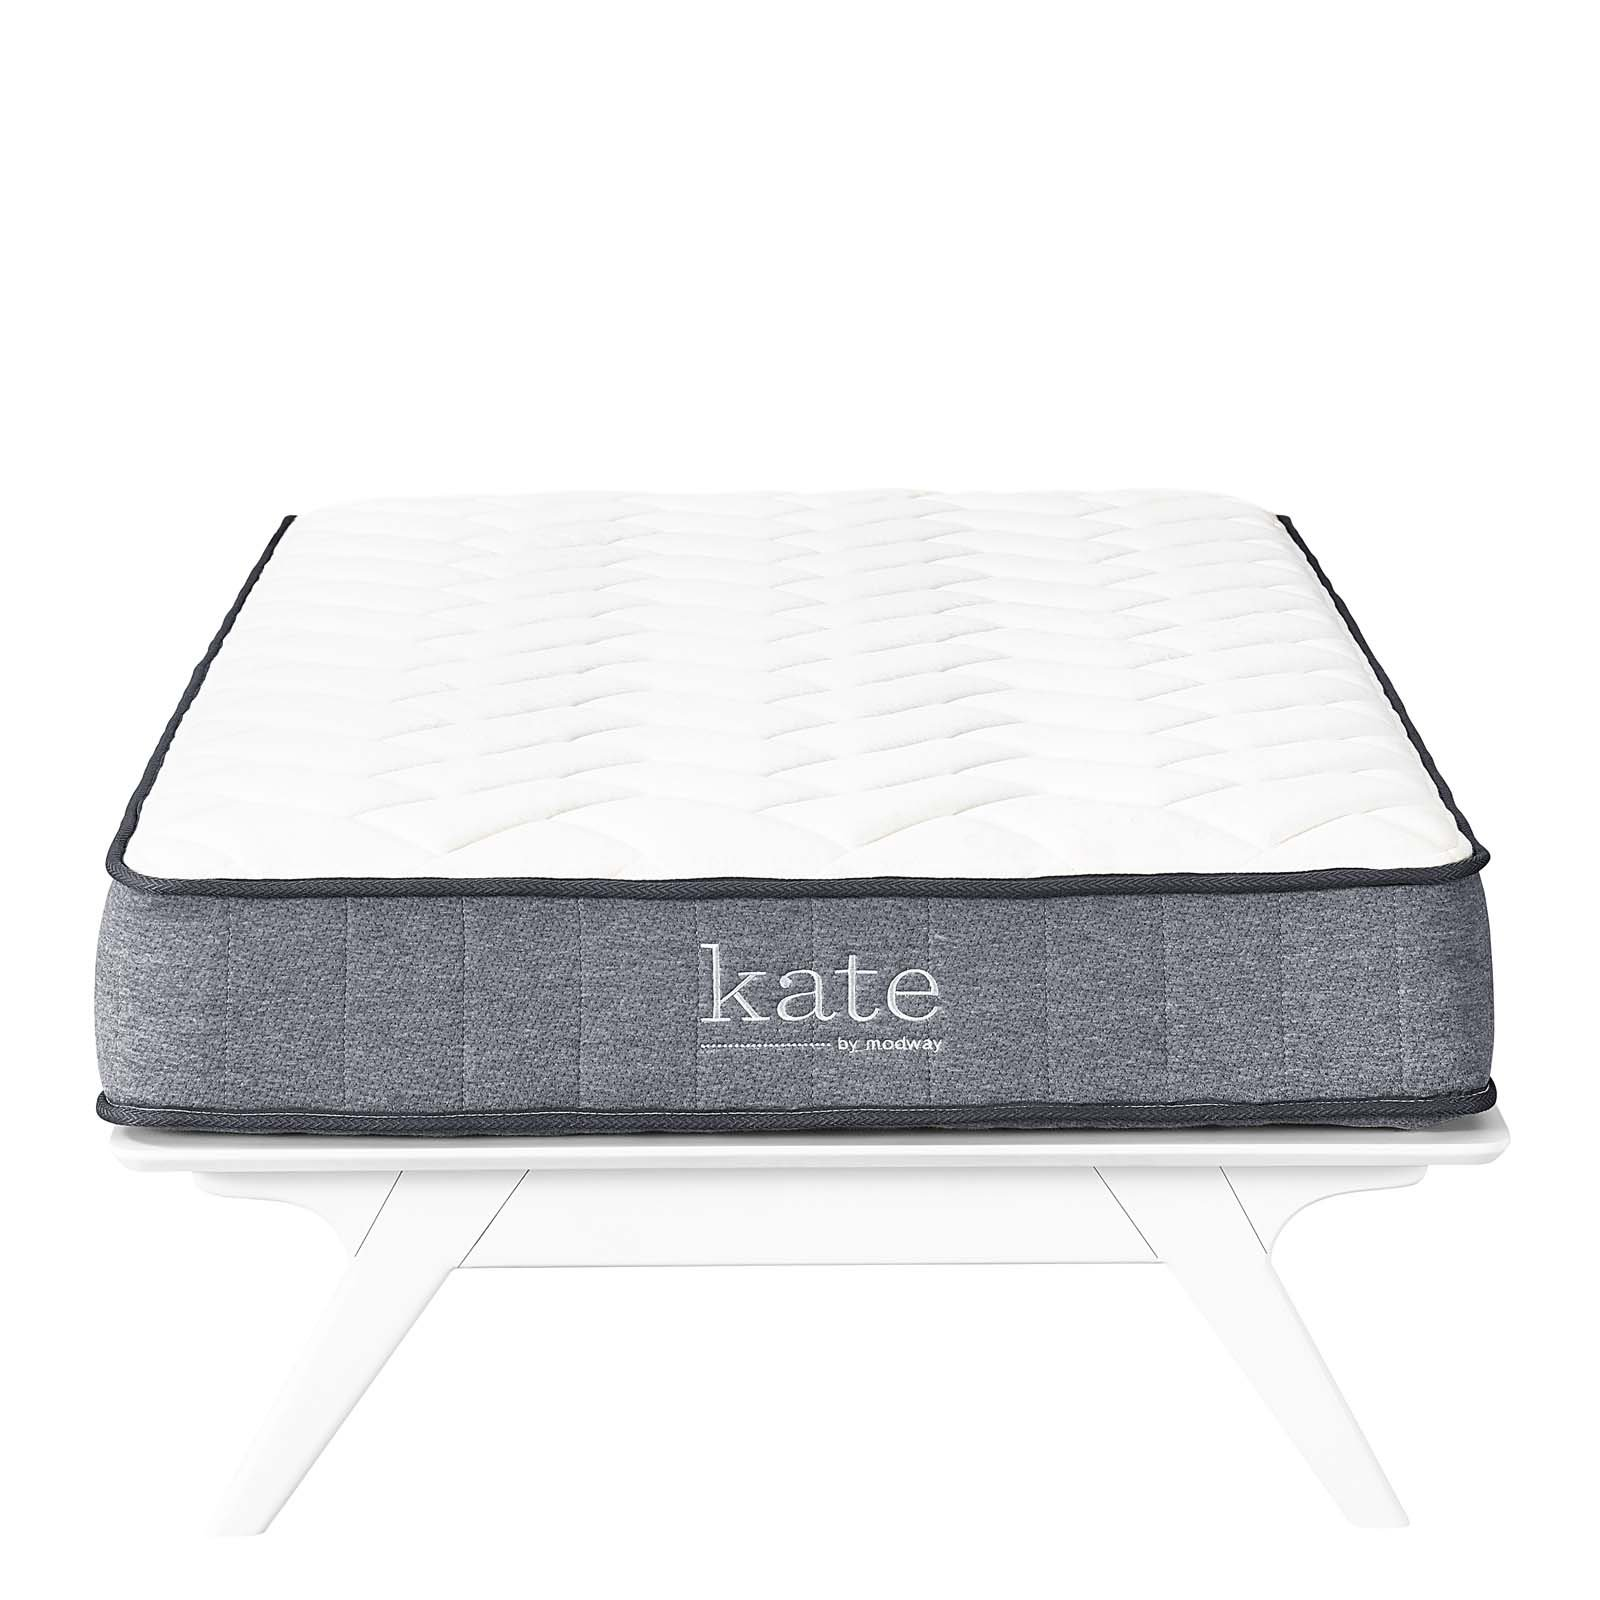 """Modway Kate 8"""" Twin Innerspring Mattress - Firm Mattress For Child or Guest Room - Perfect For Bunk Bed - Loft Bed - 10-Year Warranty"""